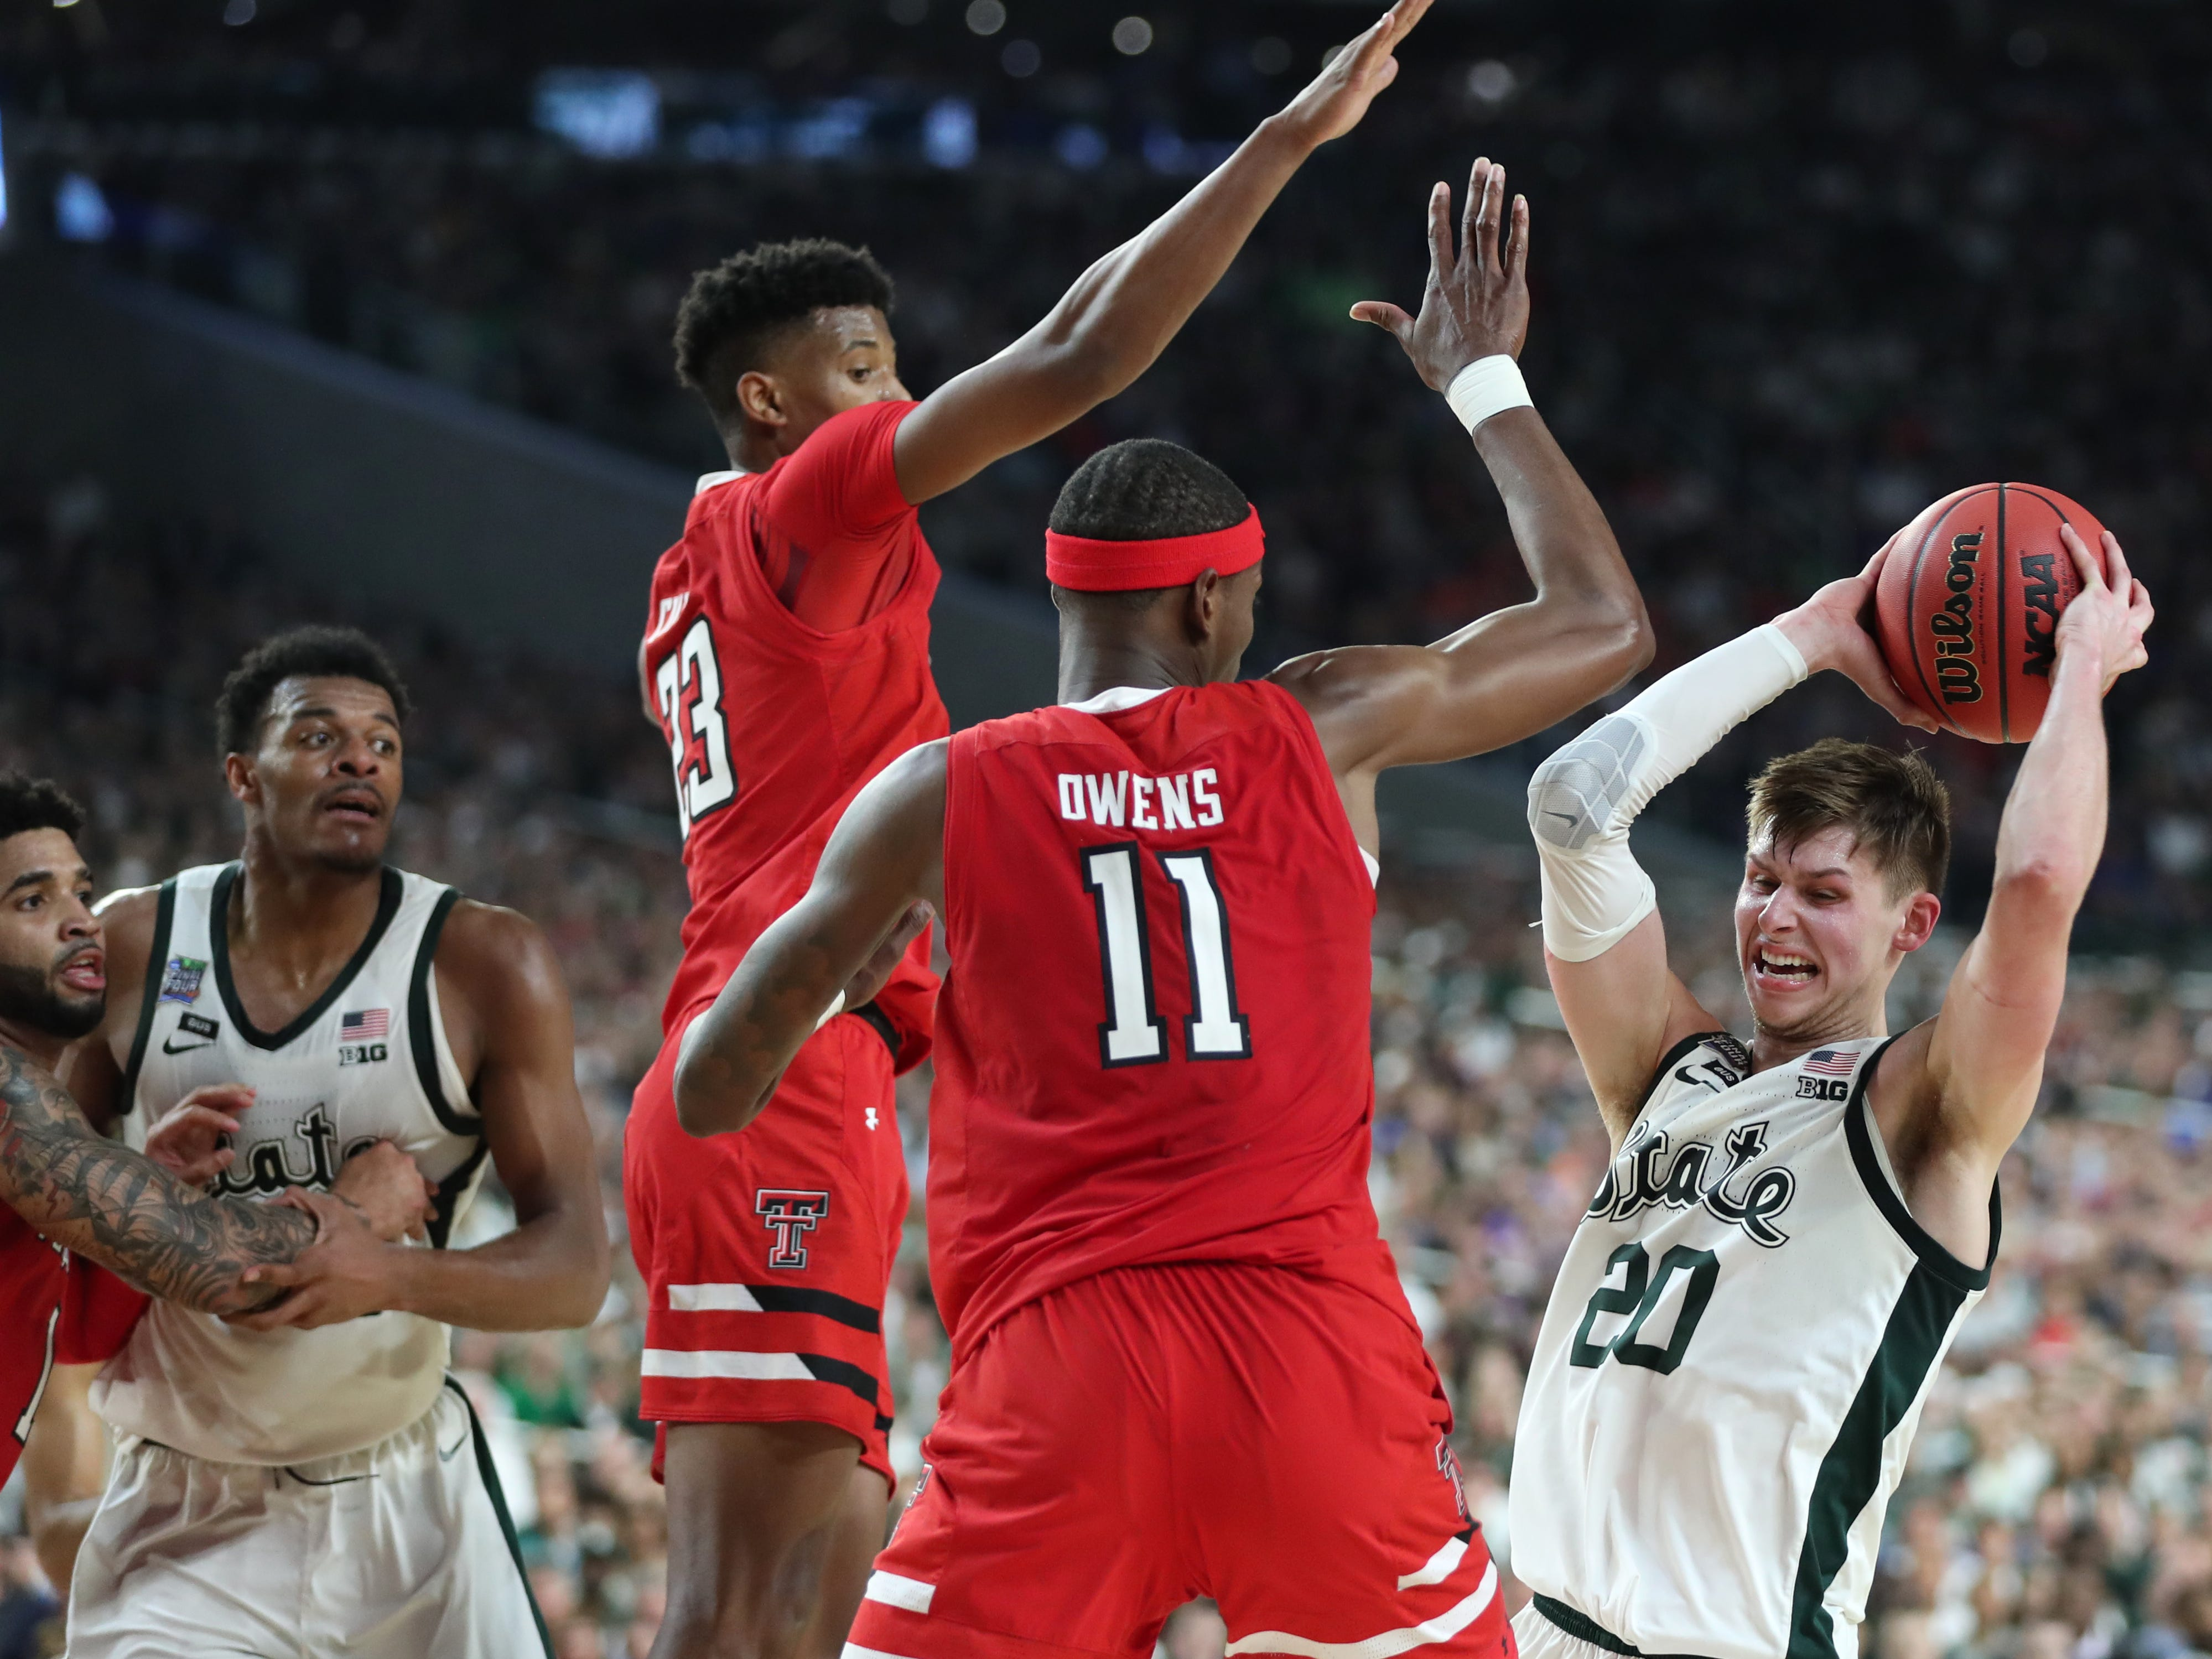 Texas Tech guard Jarrett Culver and forward Tariq Owens  defend Michigan State guard Matt McQuaid in the first half of the Final Four game at U.S. Bank Stadium in Minneapolis, Minnesota on Saturday, April 06, 2019.